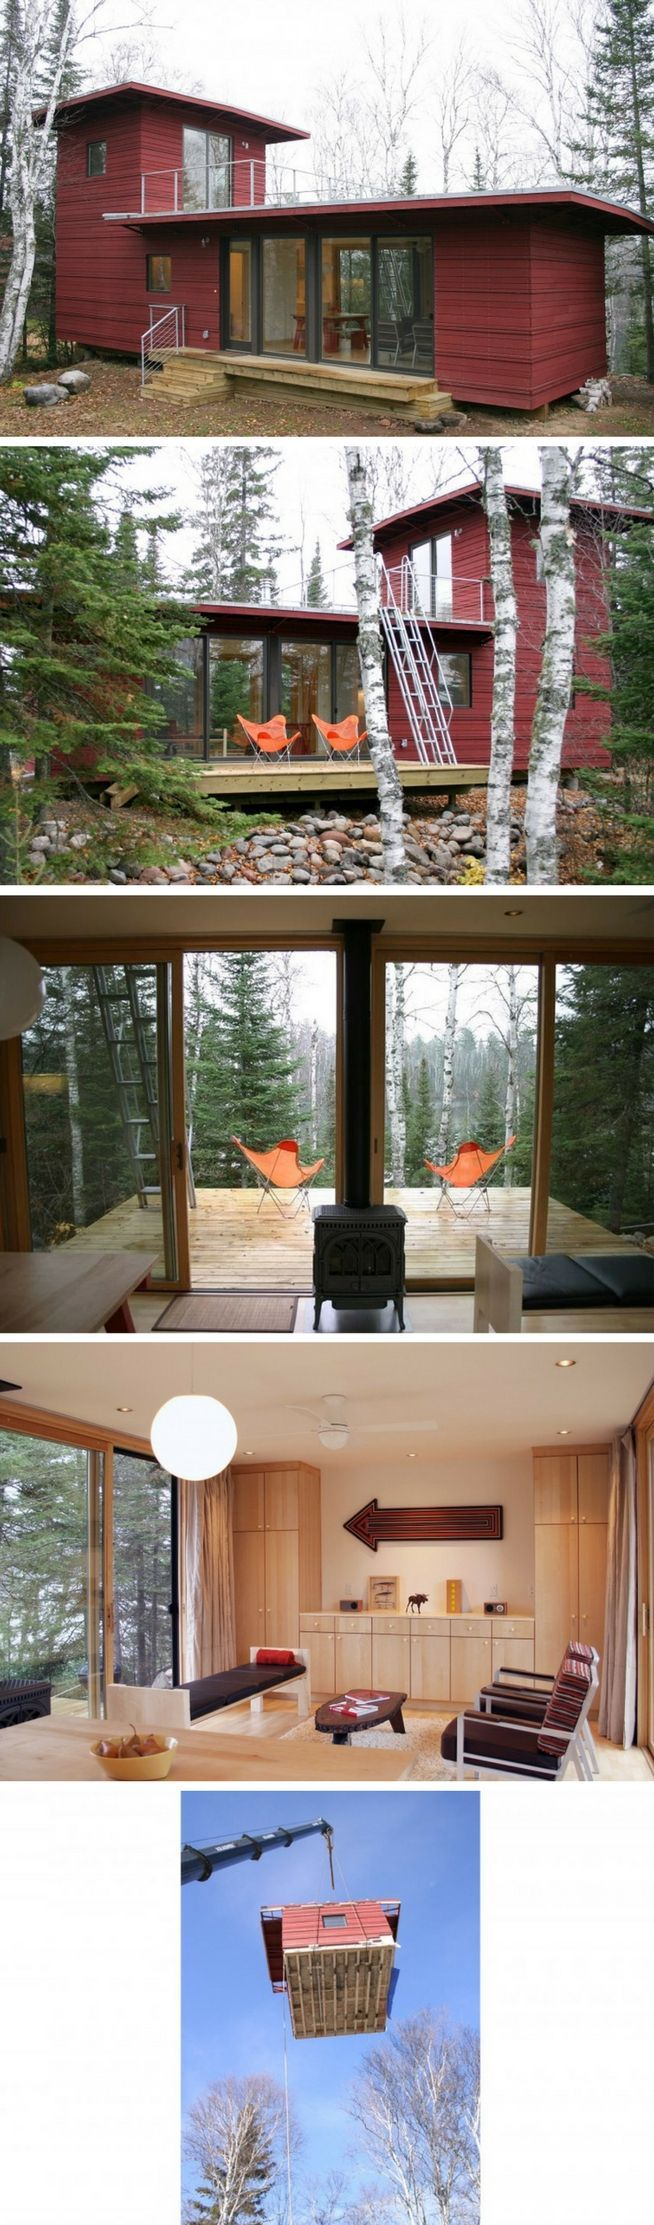 Mcglasson weehouse shipping container there are things you should